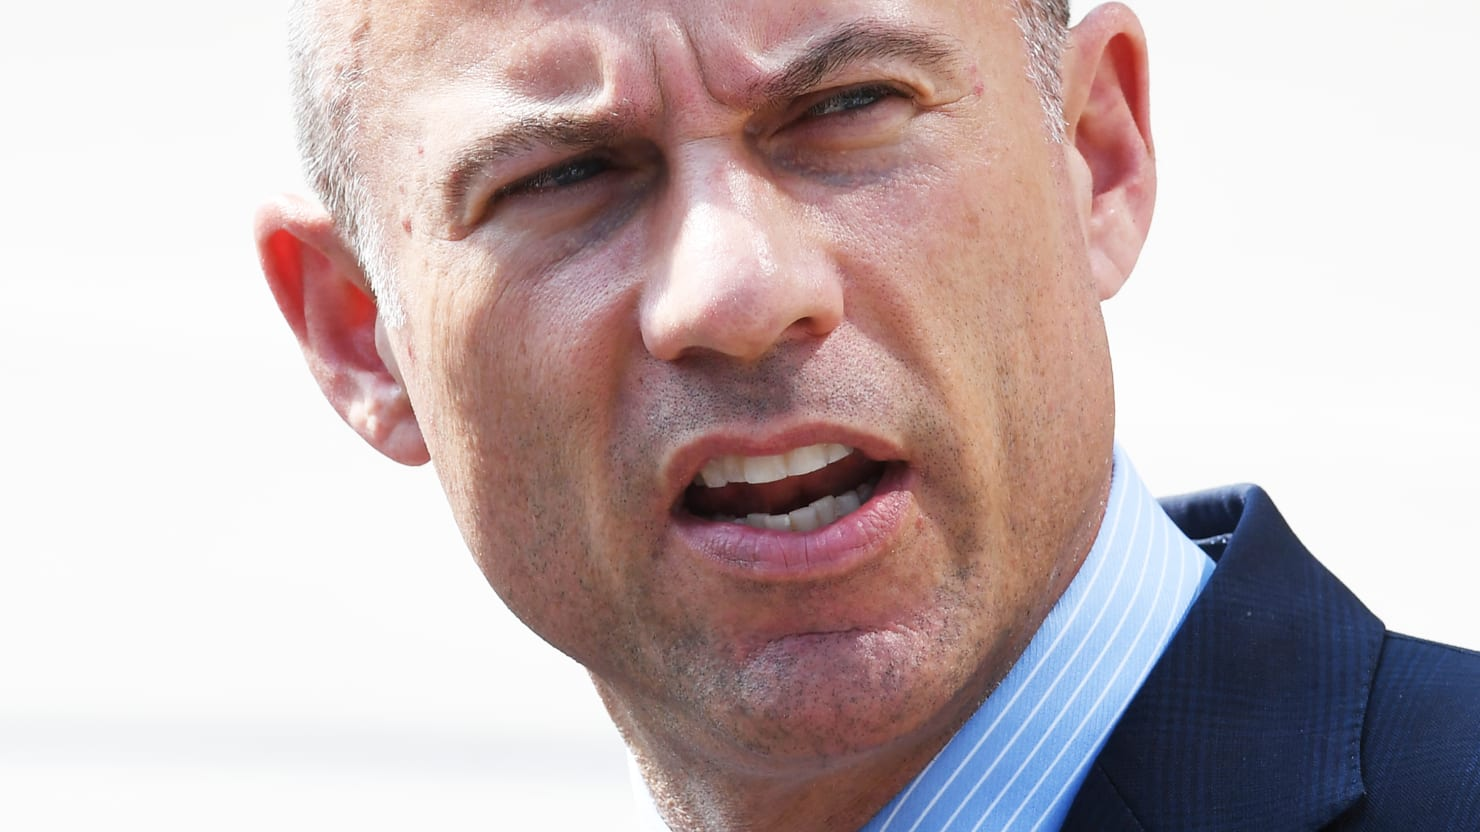 Former Client Accuses Michael Avenatti of Operating Law Firm Like a 'Ponzi Scheme'